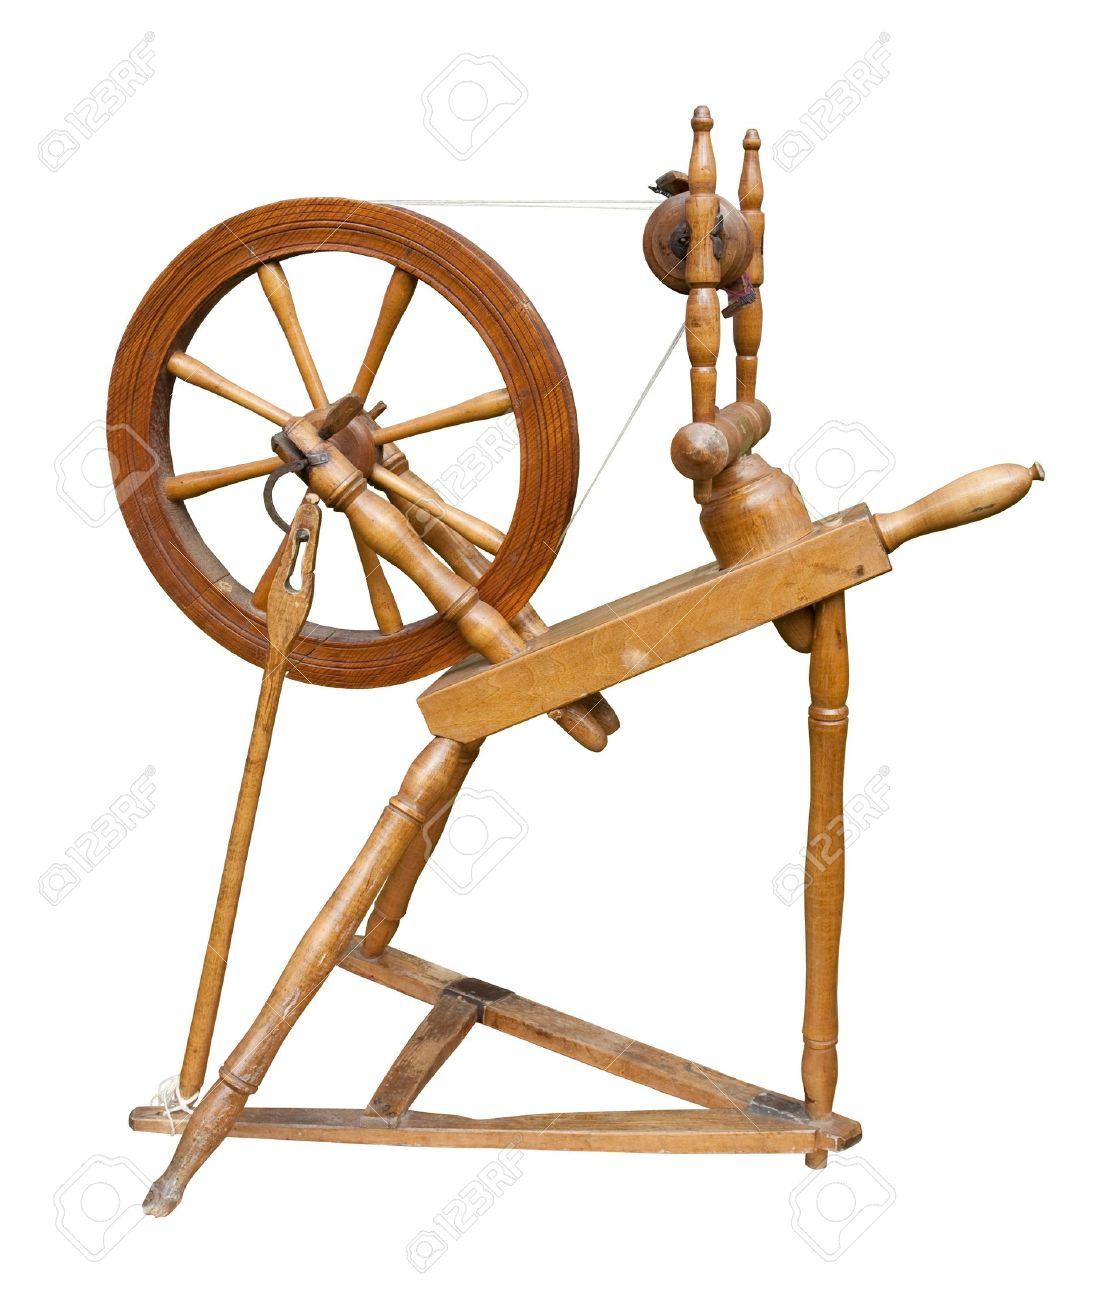 Old Spinning Wheel Stock Photo Picture And Royalty Free Image Image 7923976